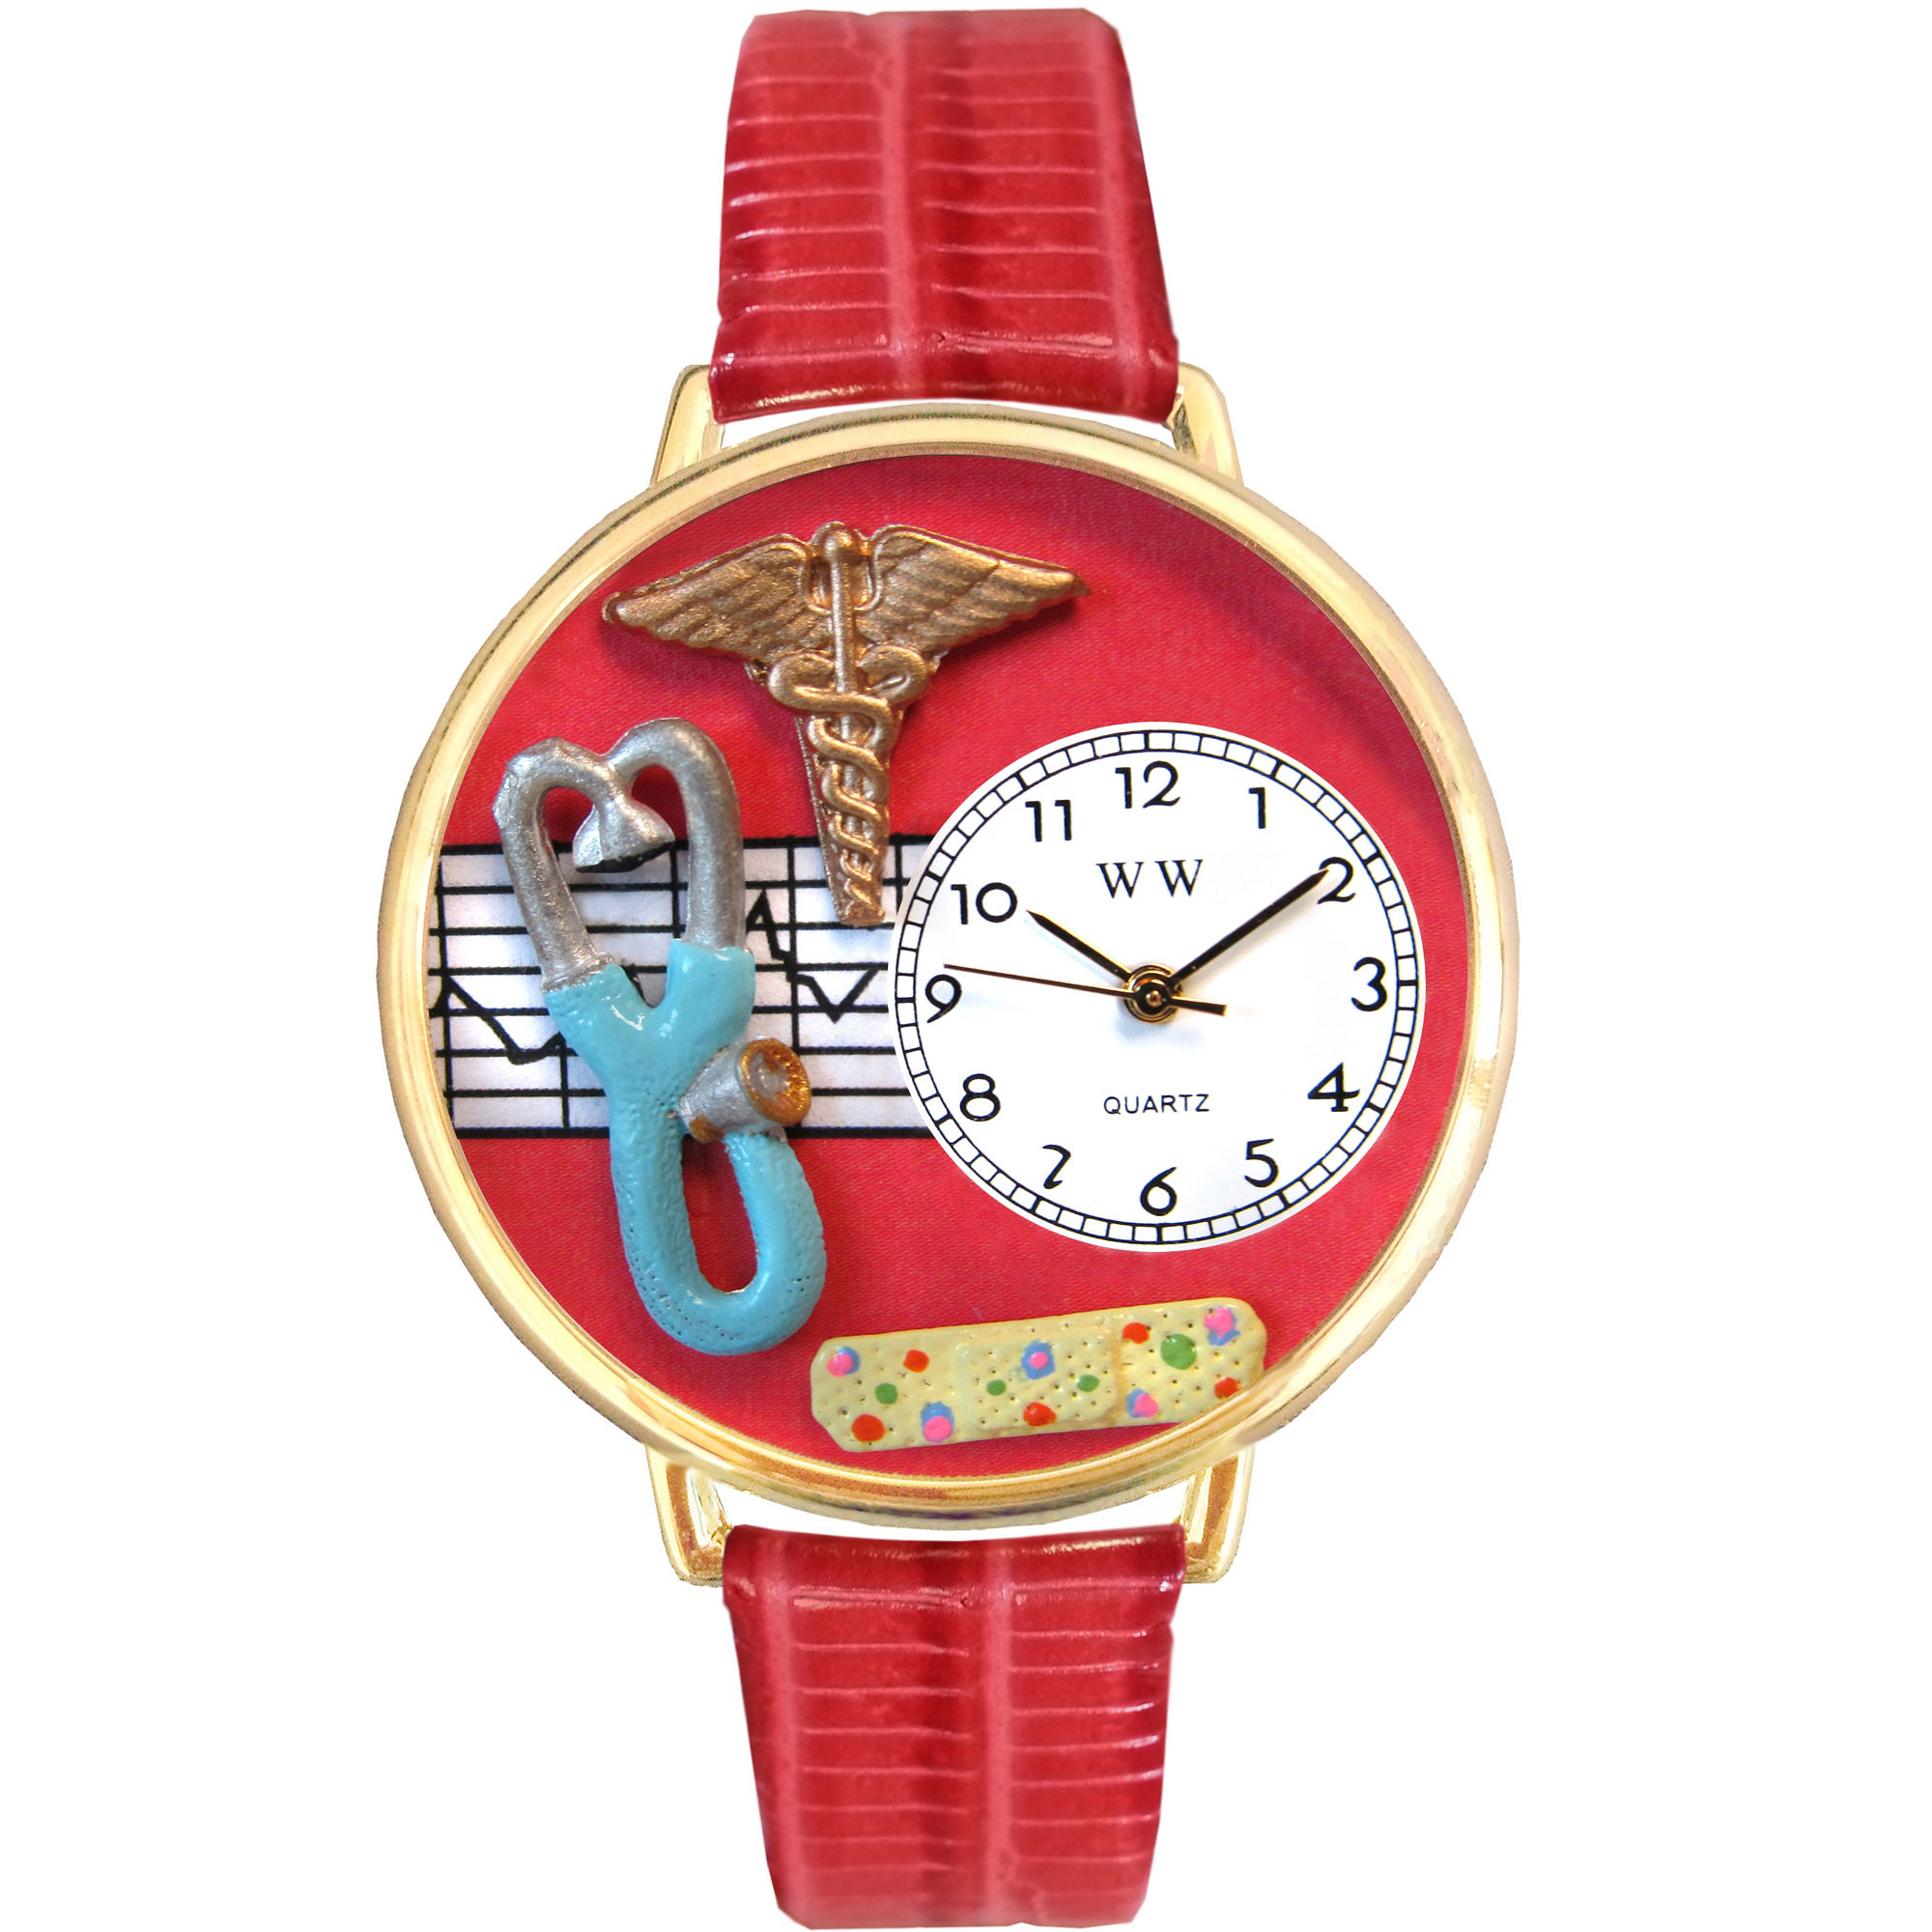 Whimsical Watches Personalized Nurse Womens Gold-Tone Bezel Red Leather Strap Watch